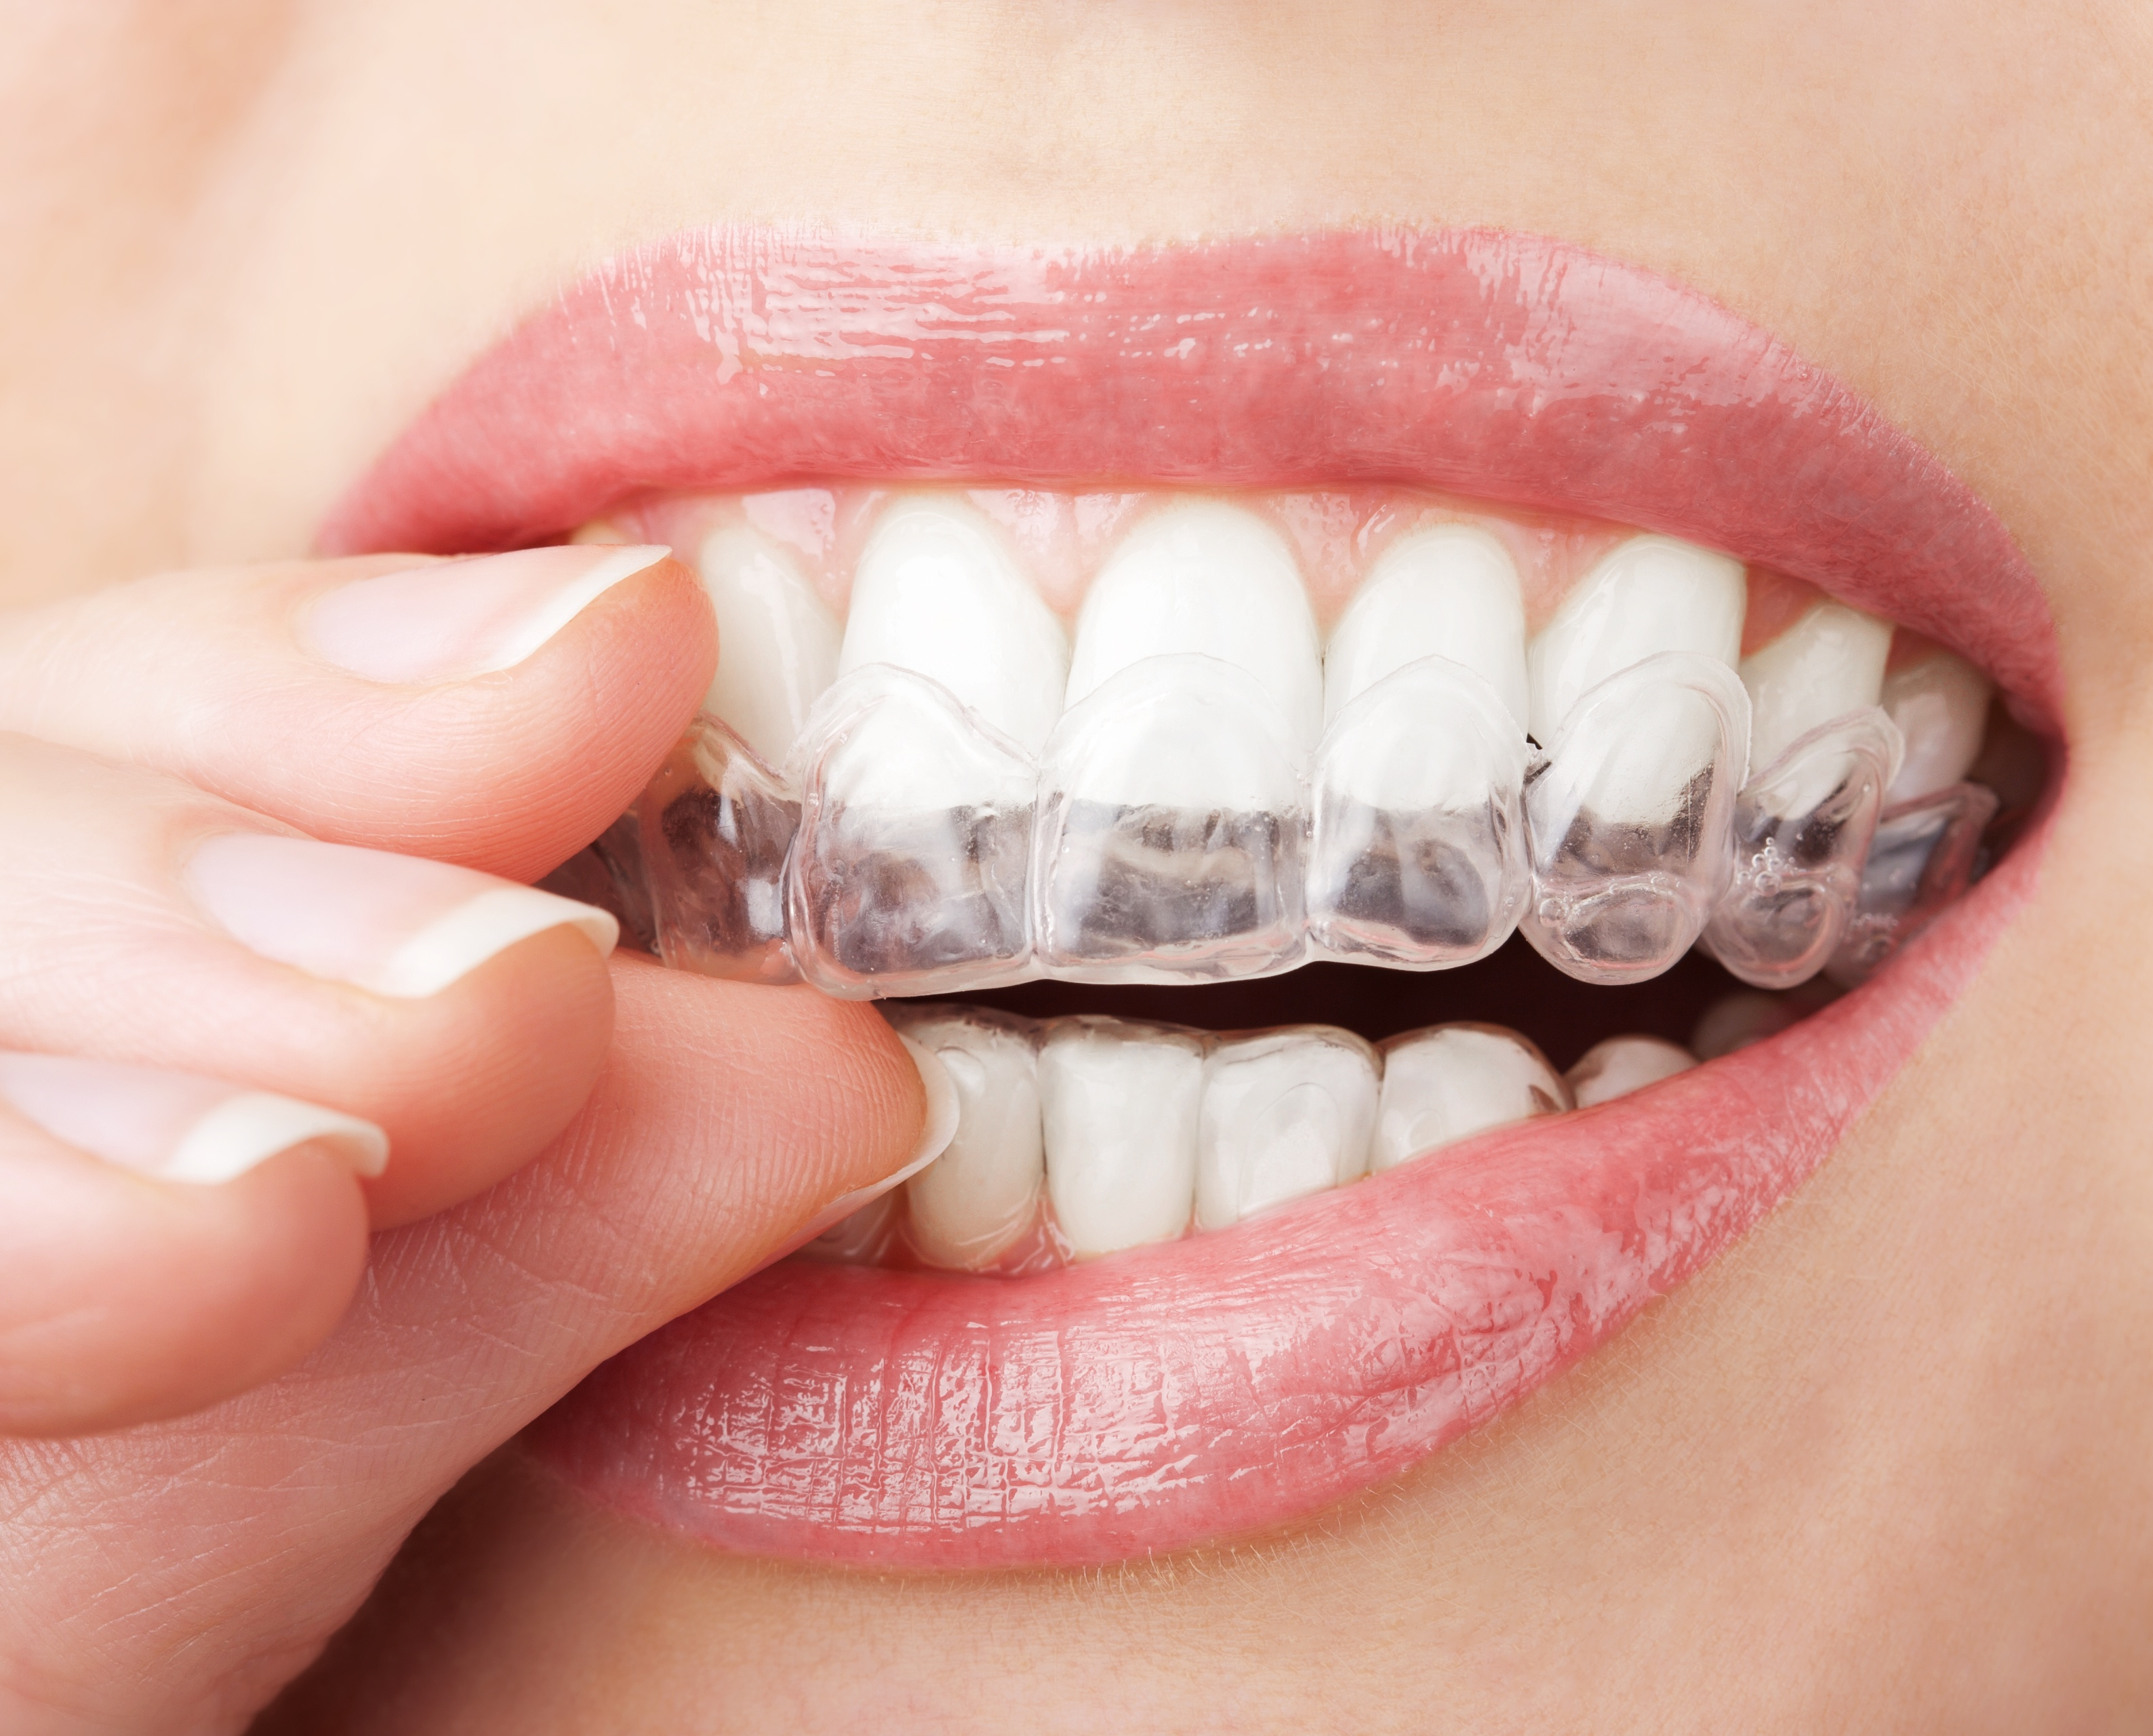 Where can I get Plaiview Invisalign?